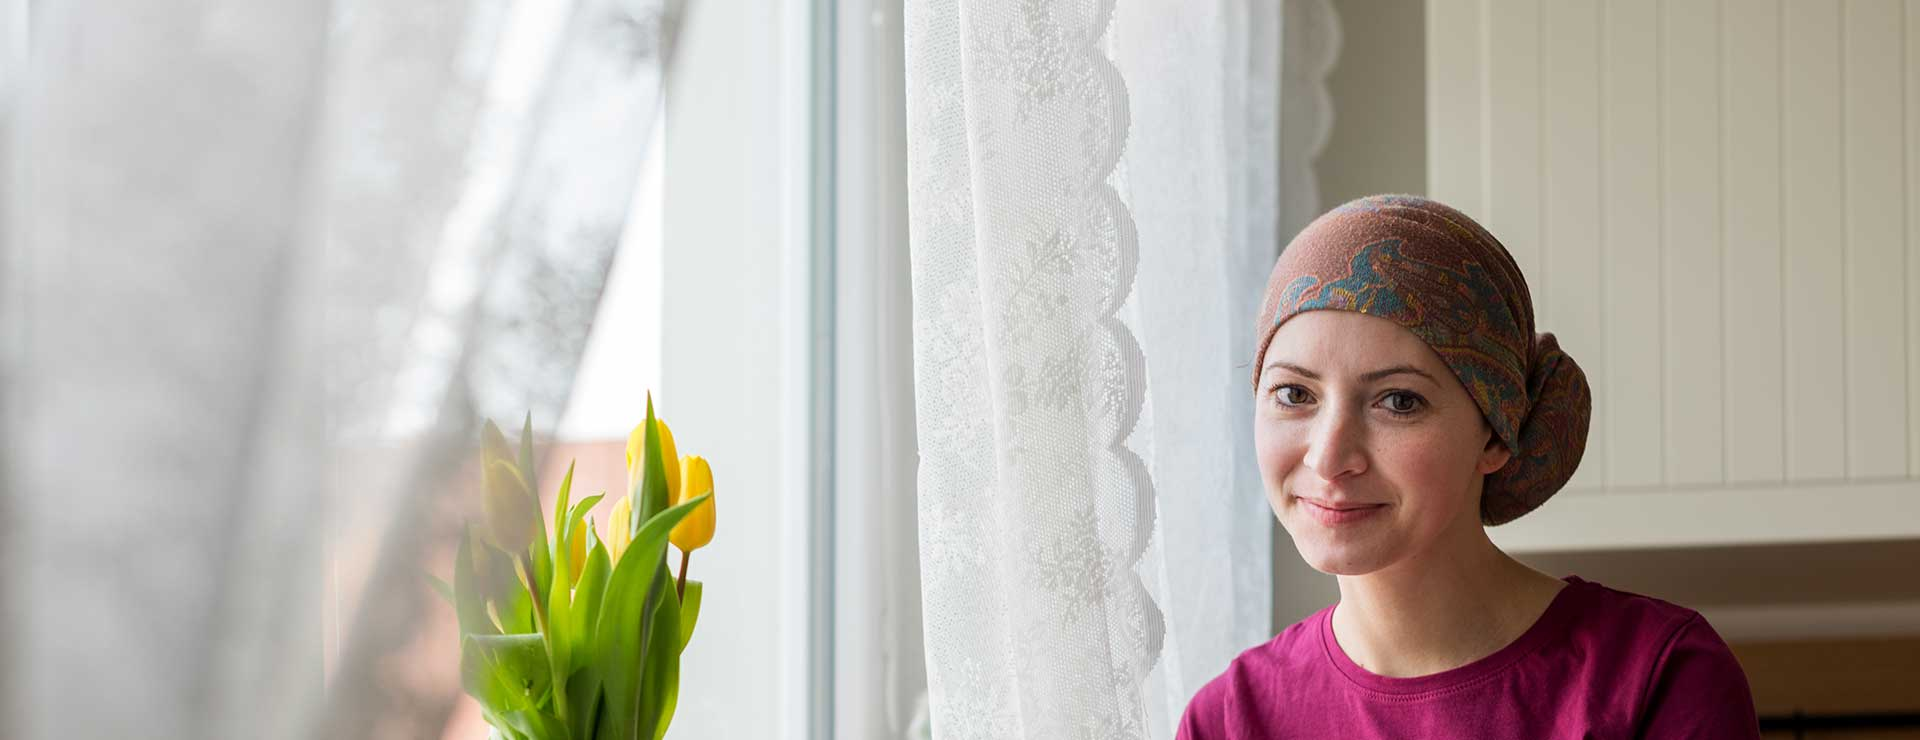 A young cancer patient sits in front of a window.